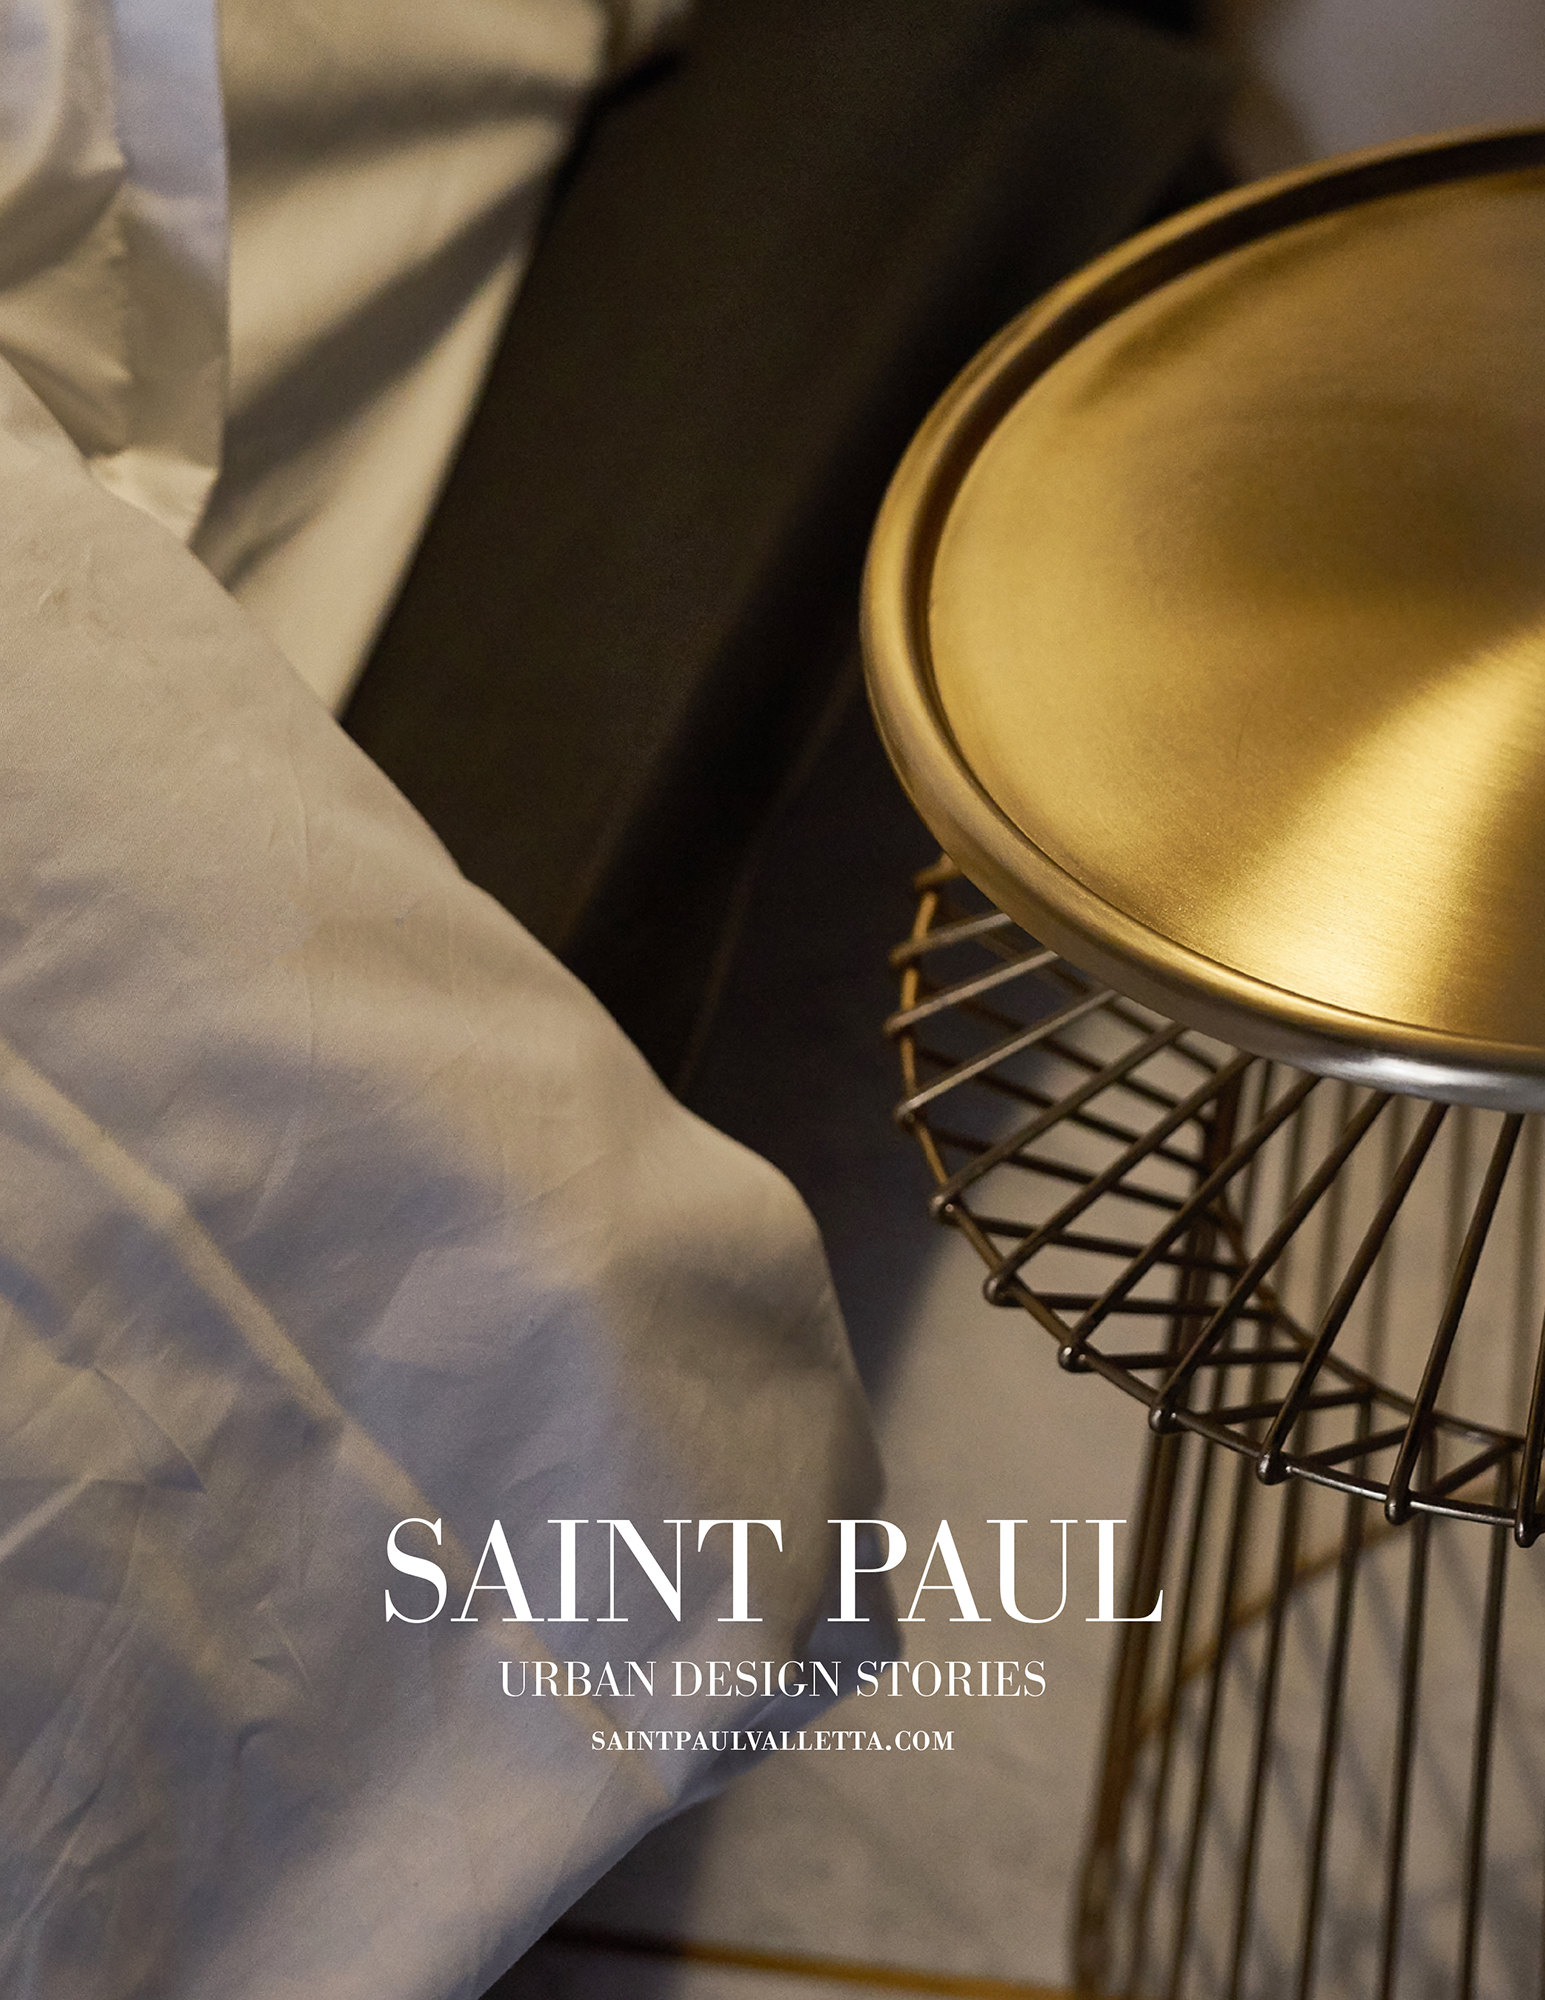 Saint Paul Valletta - One of Valletta's best-kept secrets, the apartments at Saint Paul are ideal for well-travelled explorers that seek the comfort of a well-designed home away from home.One Blue Dot curated the brand's official website text content and wrote copy for all segments within the online platform. We worked closely with photographer Alexandra Pace to ensure visuals and text together effortlessly convey the brand's hospitality vision.